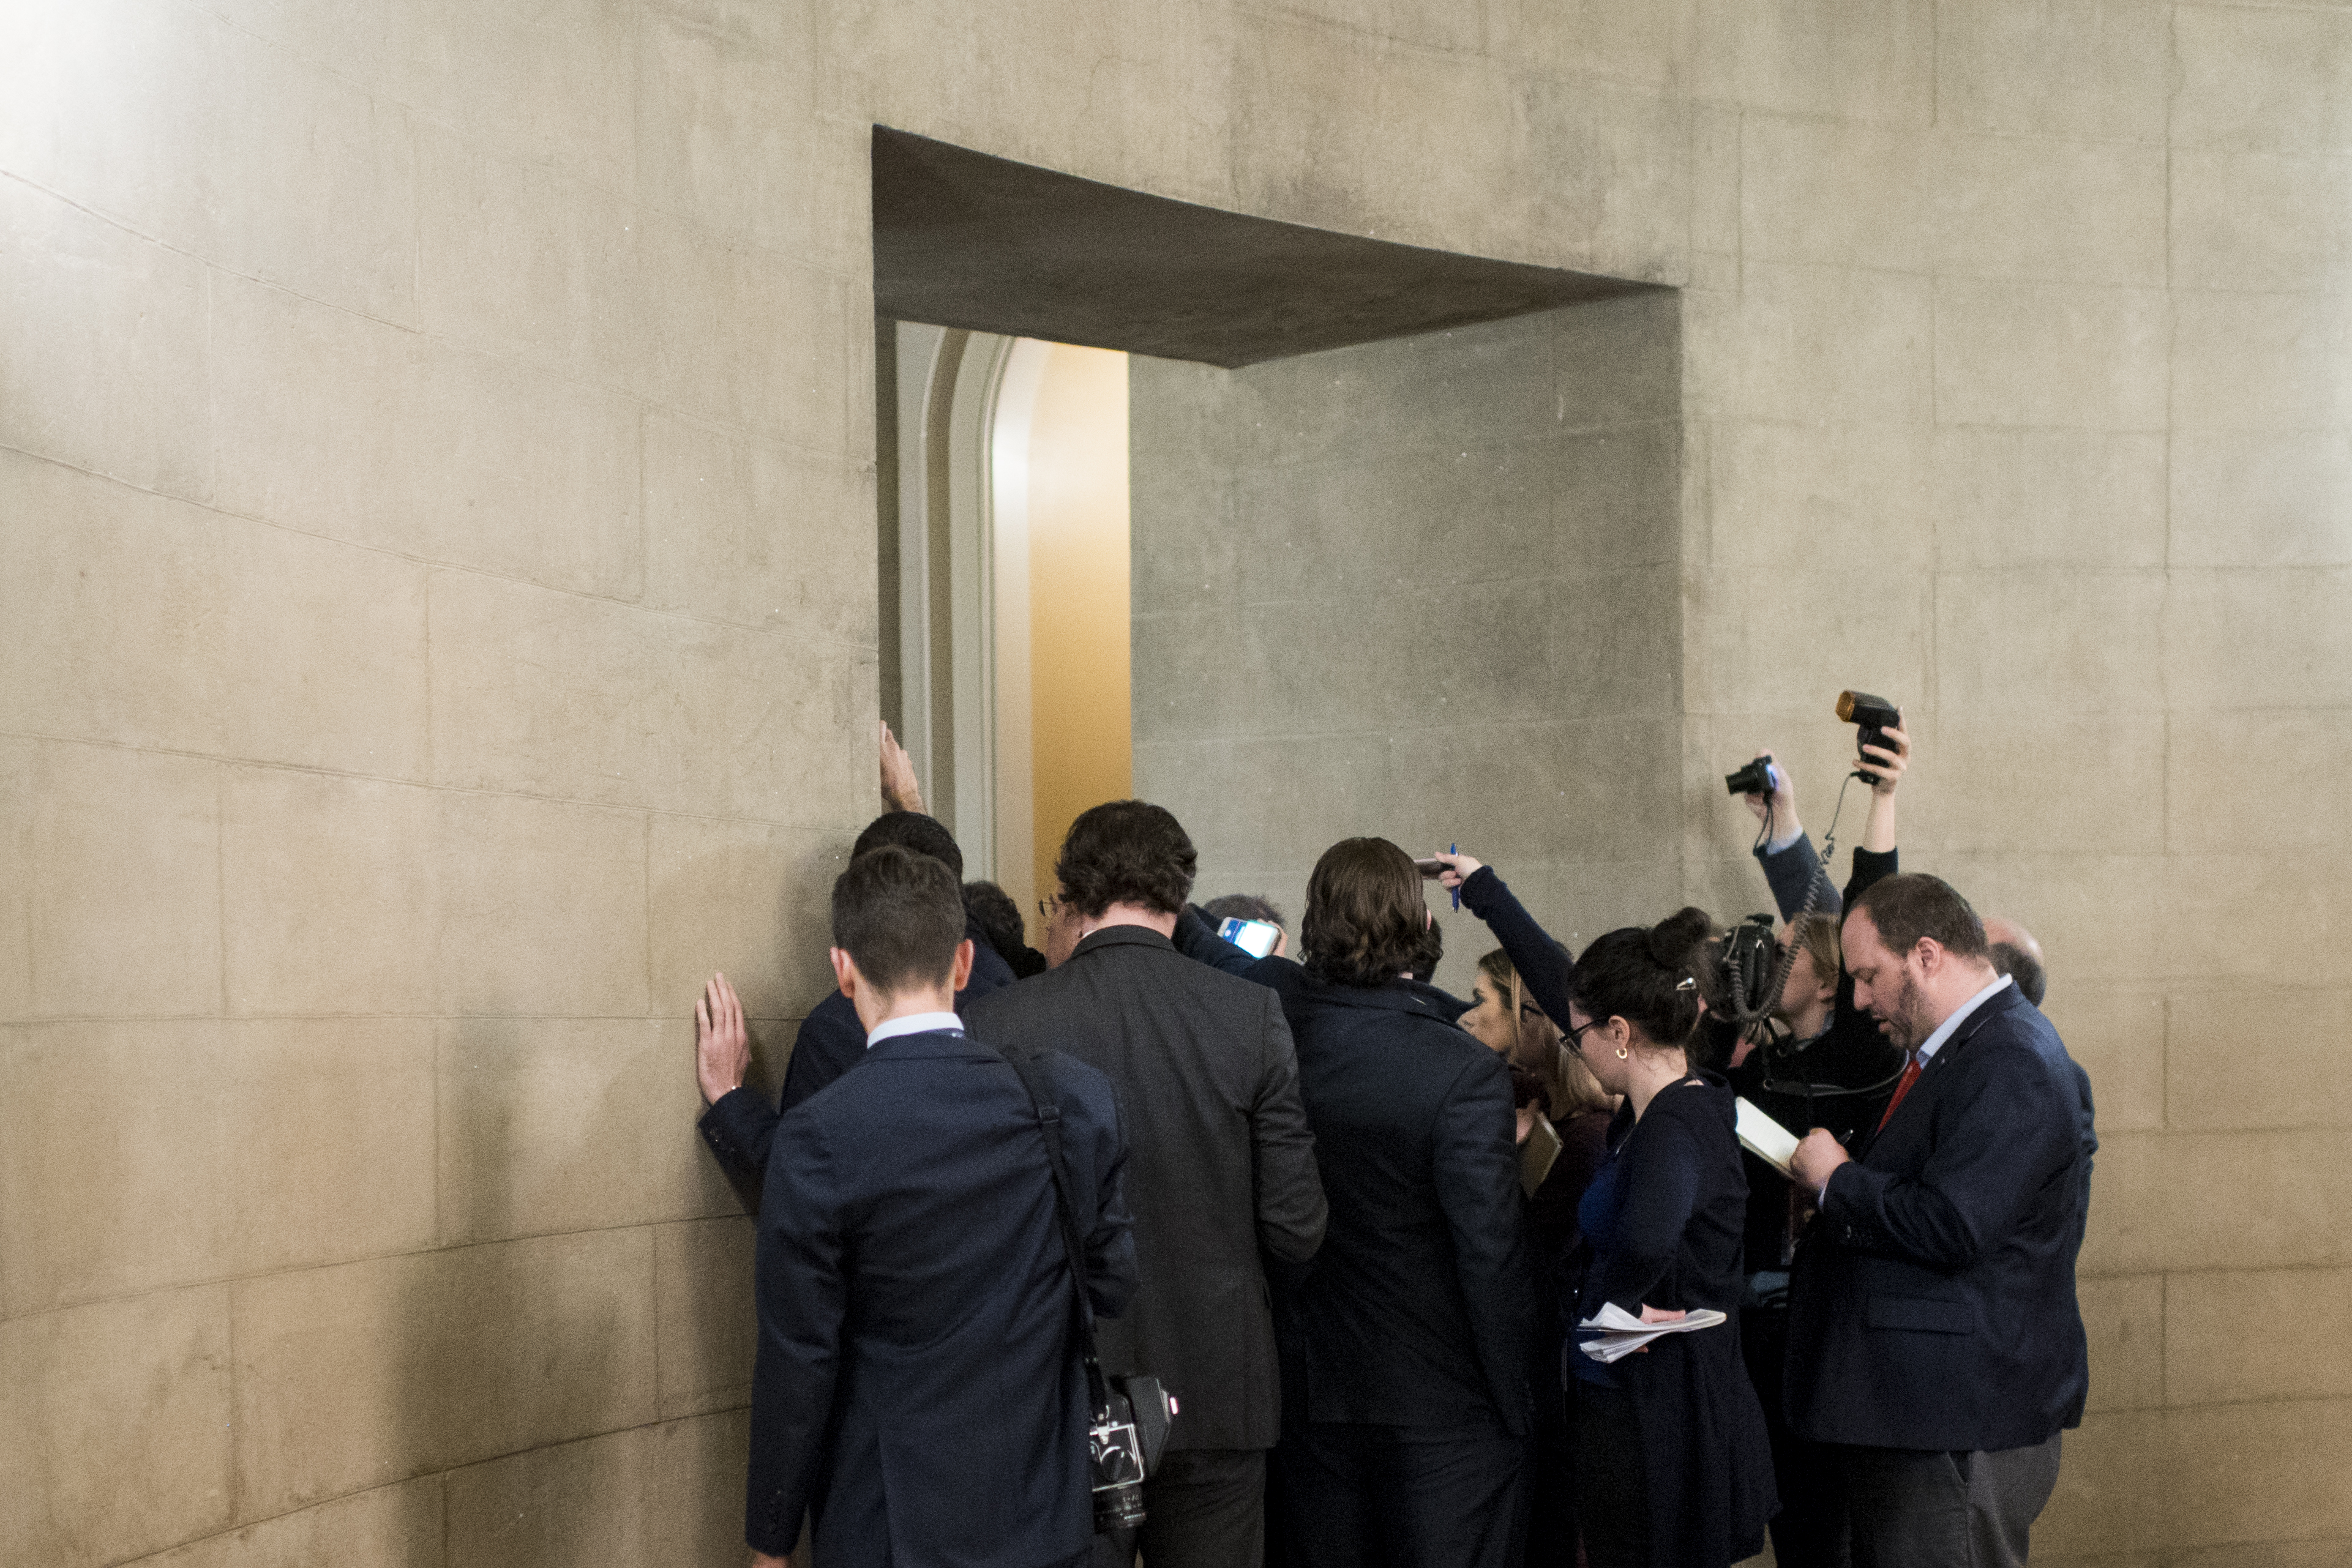 UNITED STATES - JANUARY 28: Reporters crowd around Sen. Lindsey Graham, R-S.C., in the hallway just off the Rotunda as he leaves the Senate Republicans' caucus meeting to discuss witnesses for the Senate impeachment trial proceedings on Tuesday, Jan. 28, 2020. (Photo By Bill Clark/CQ Roll Call)